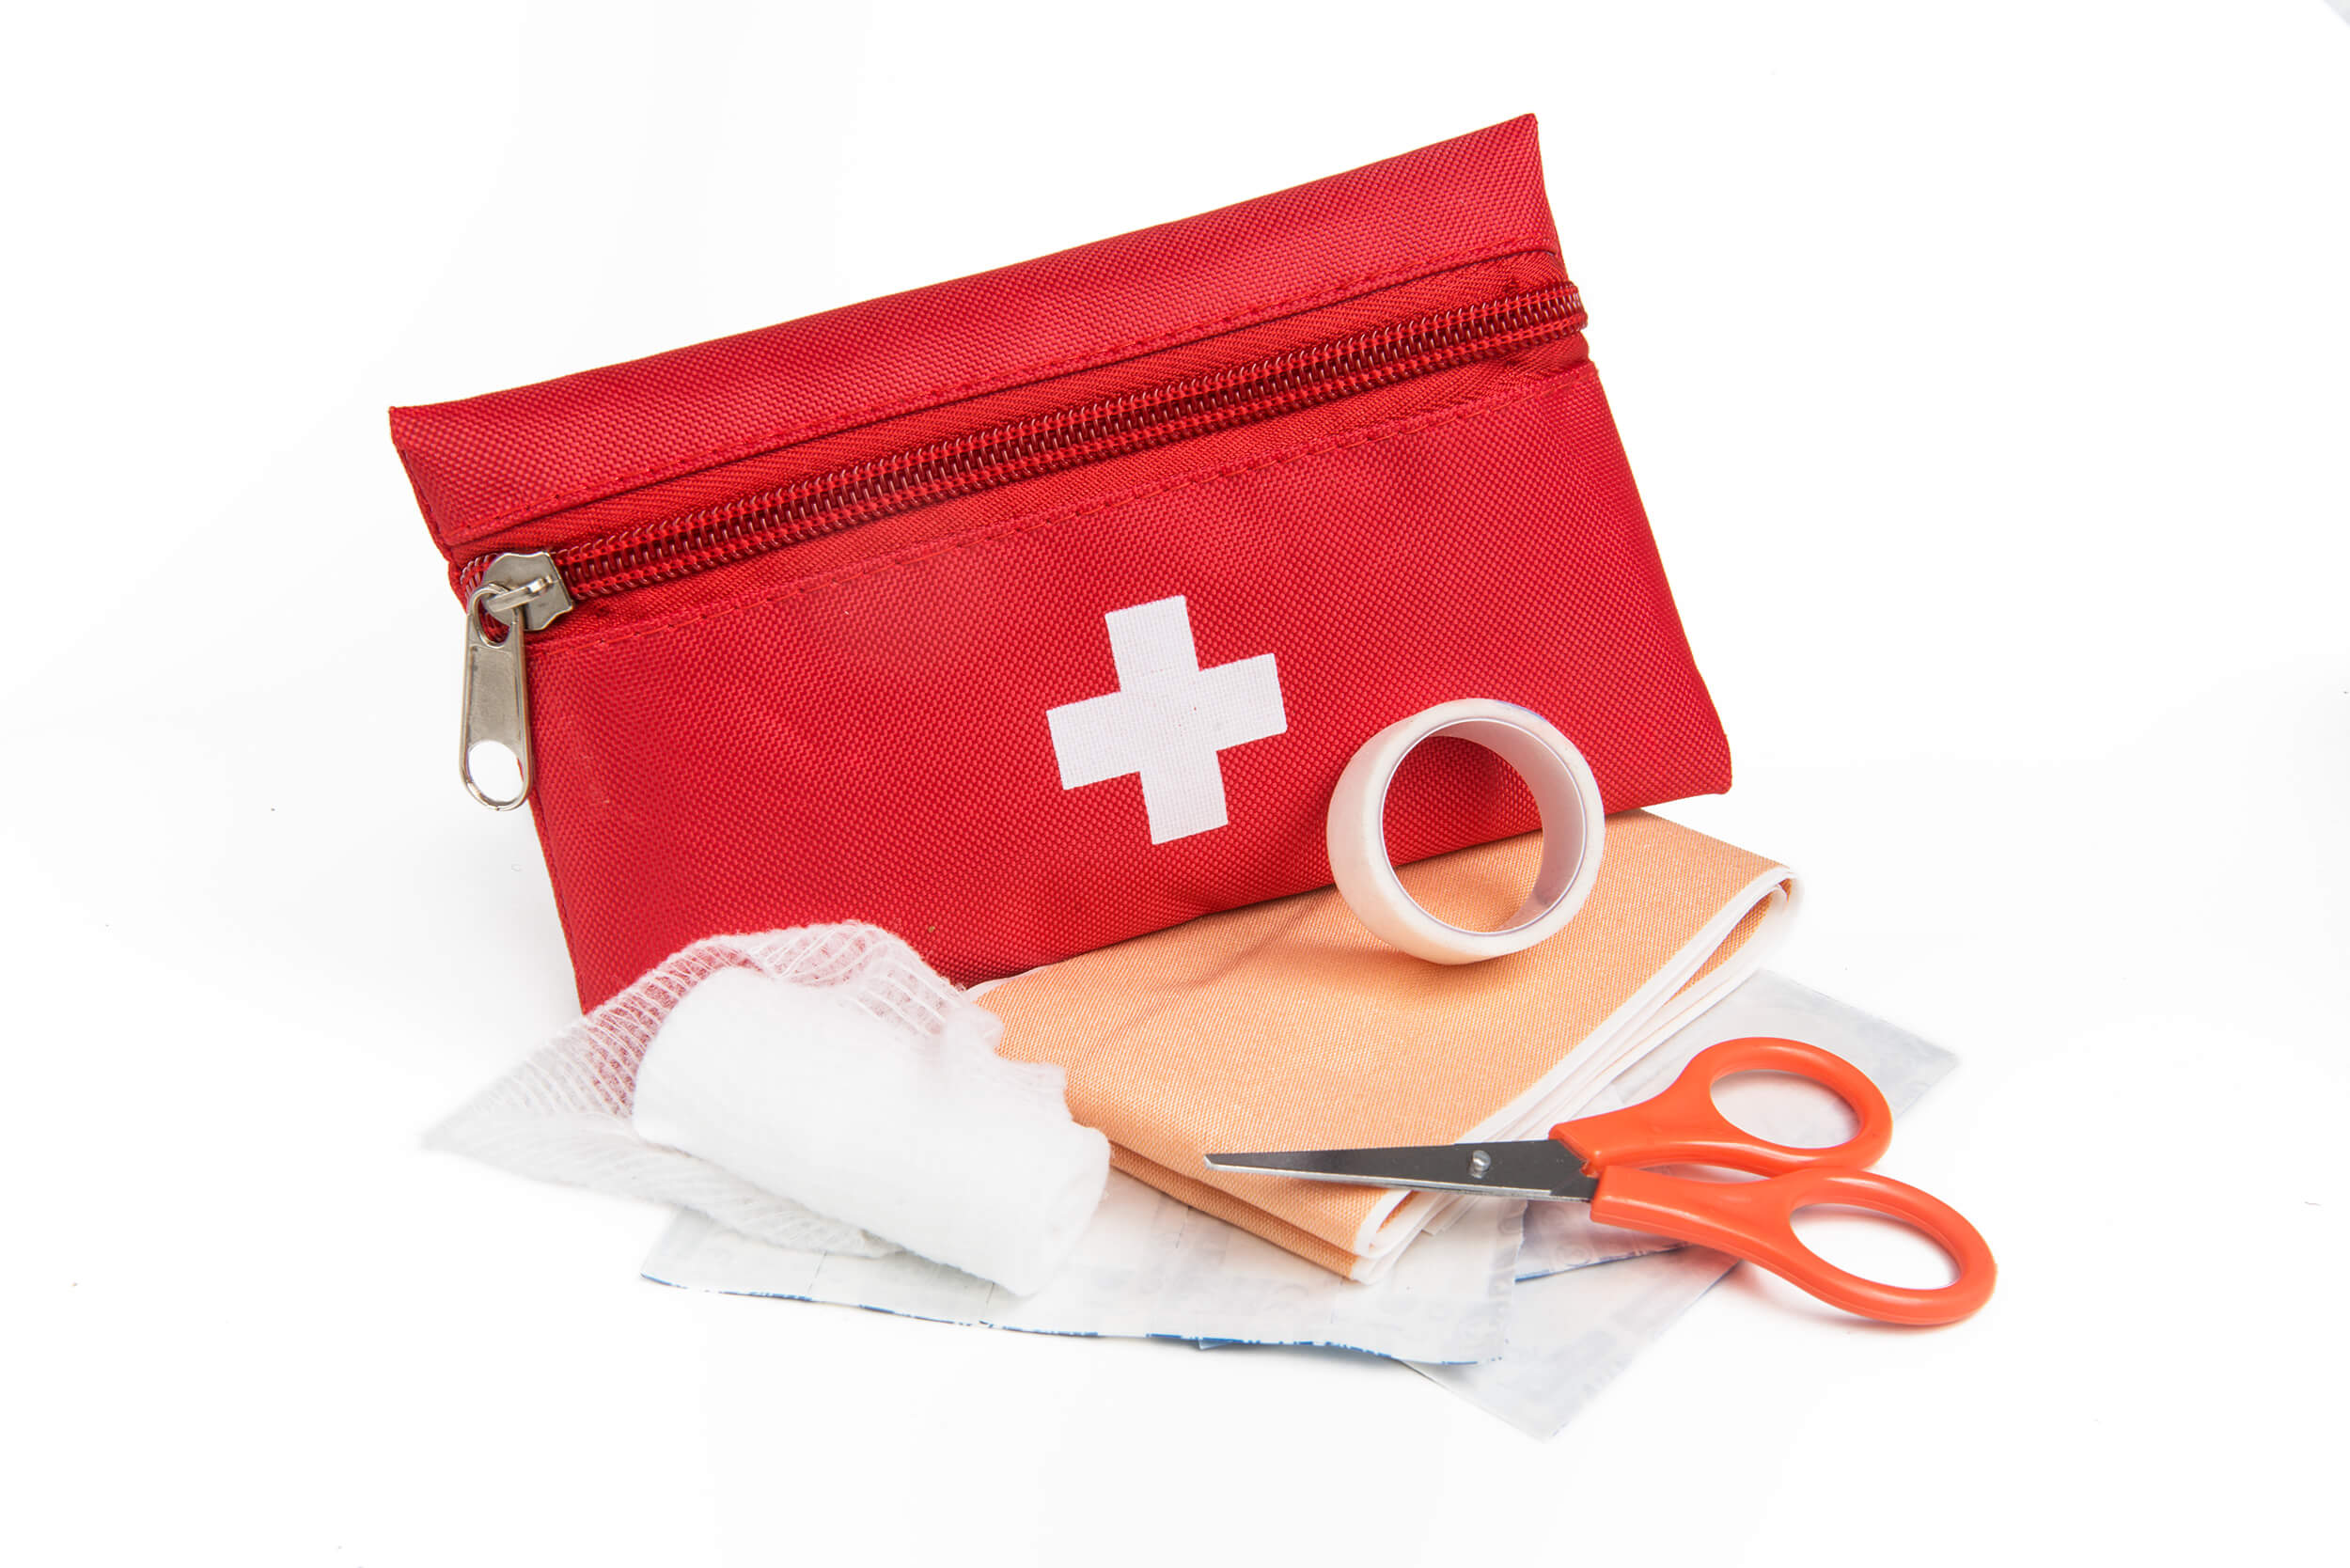 The first aid kit contents checklist